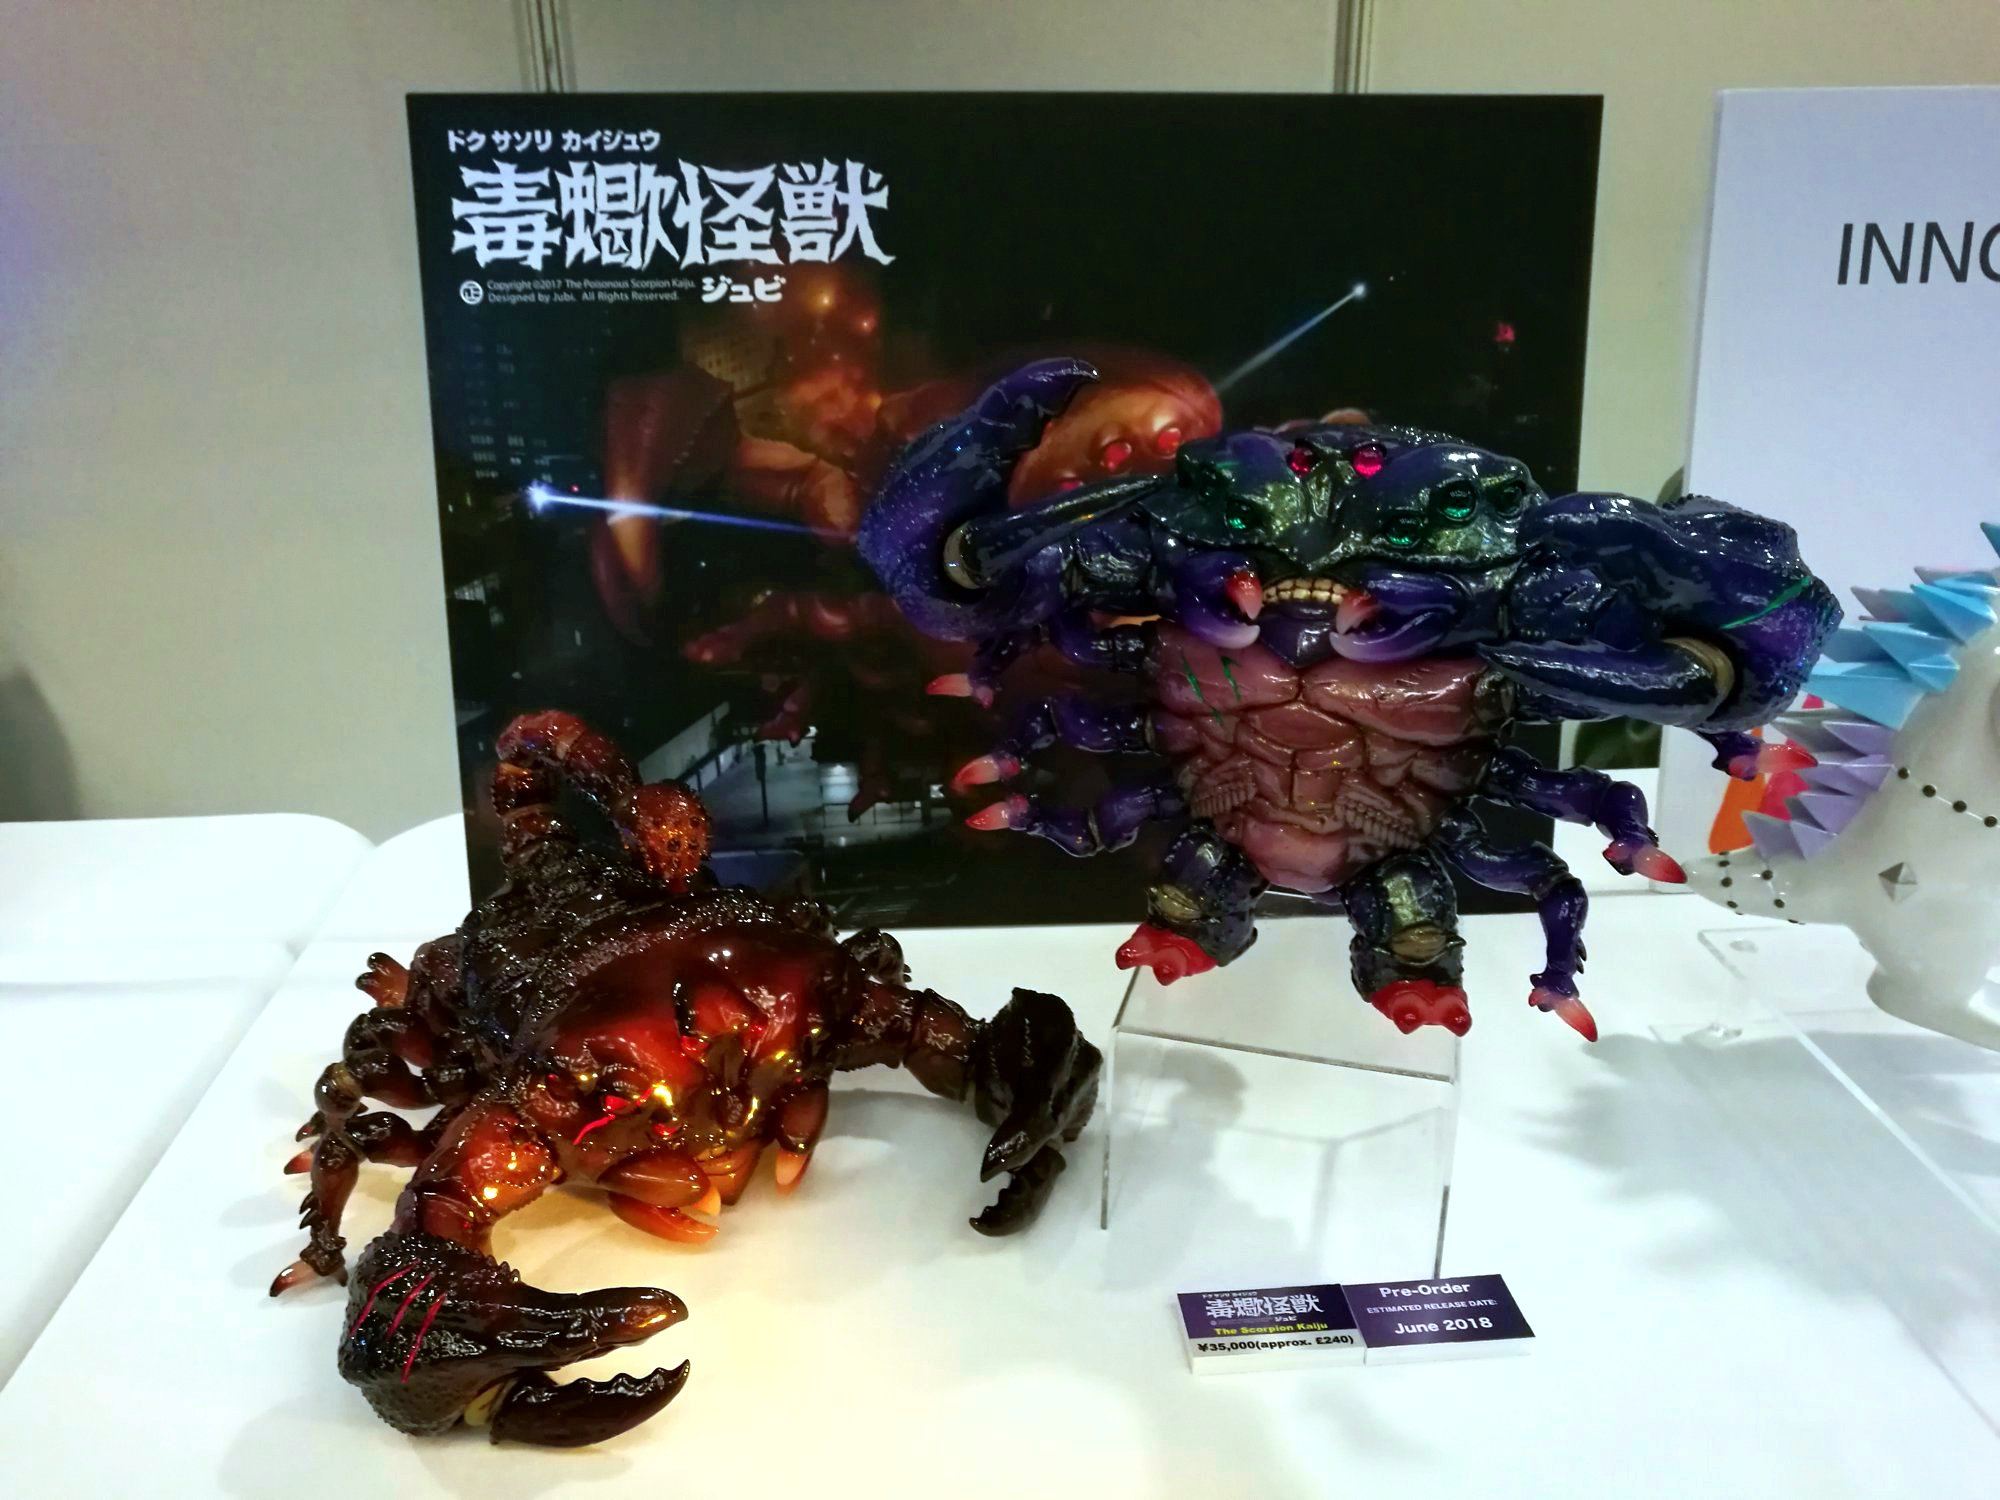 The Scorption Kaiju Instinctoy ToyCon Uk 2018